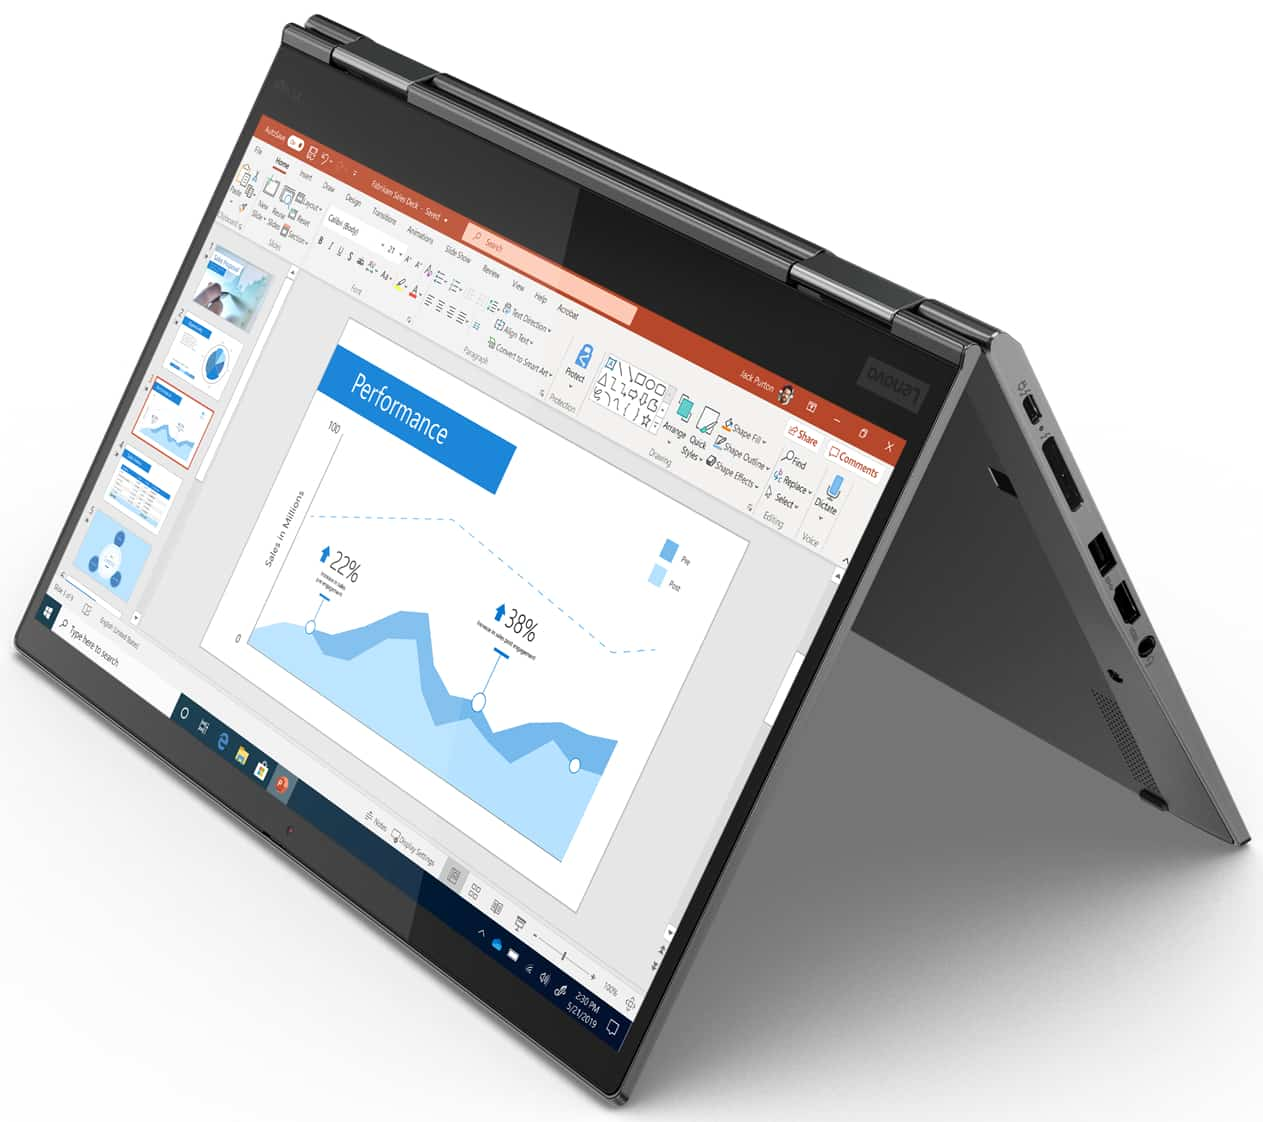 lenovo-thinkpad-yoga-g5